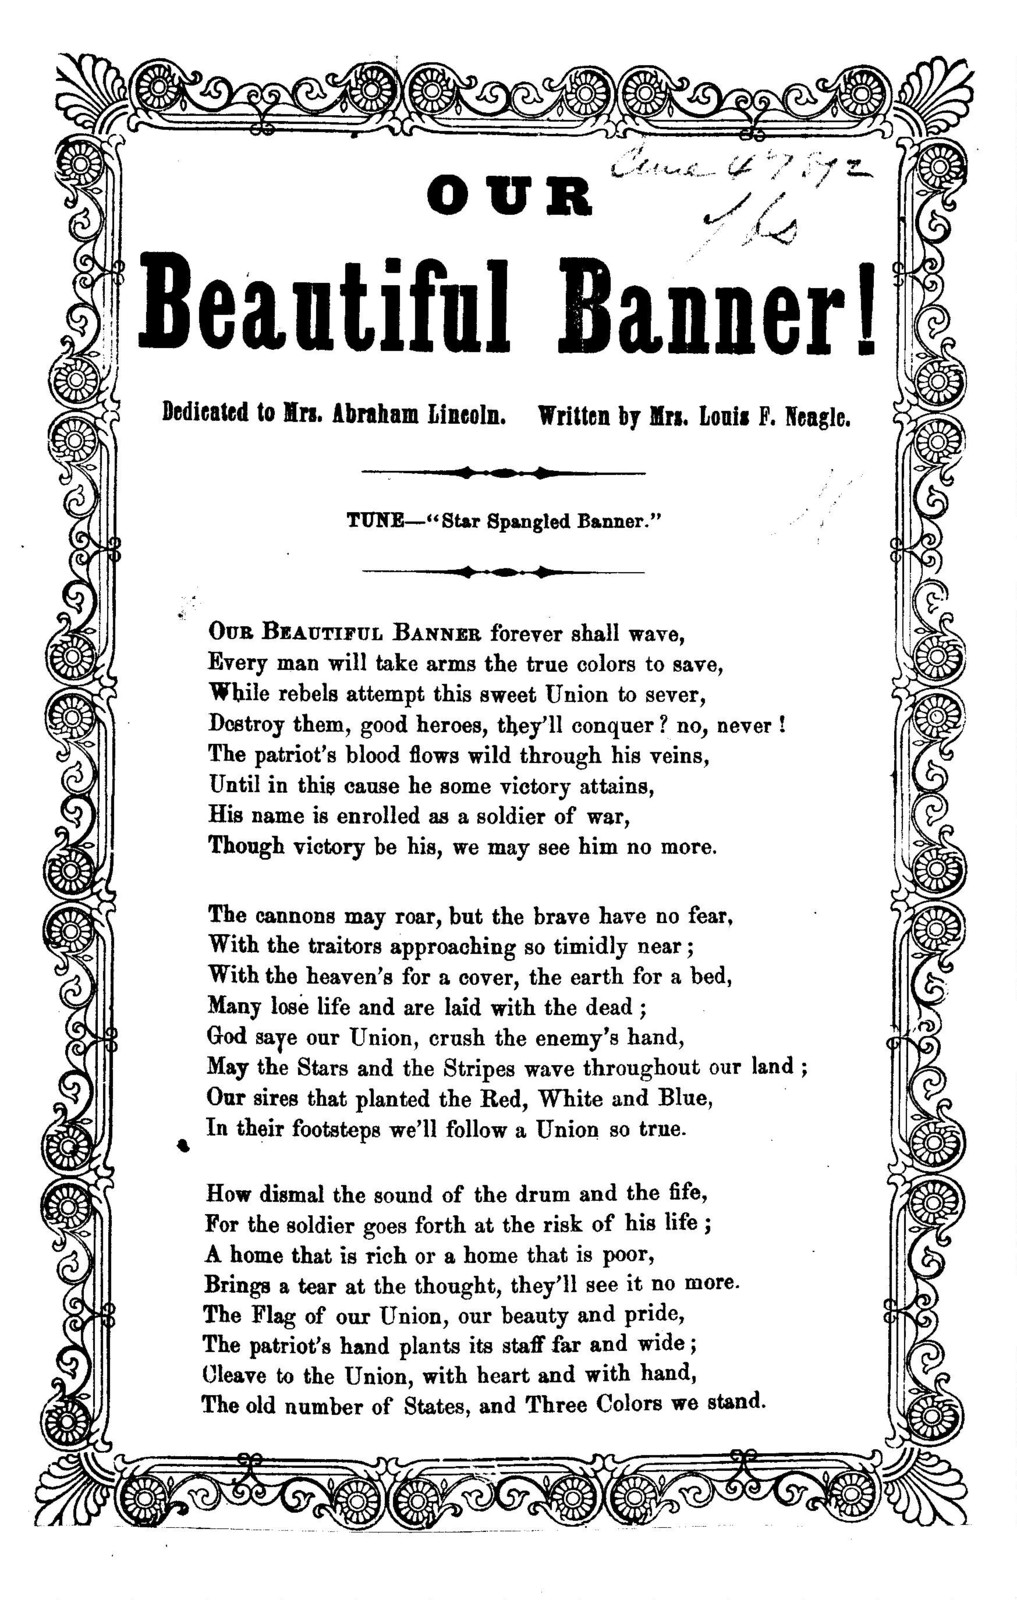 """Our beautiful banner! Written by Louis F. Neagle. Tune- """"Star Spangled Banner."""""""